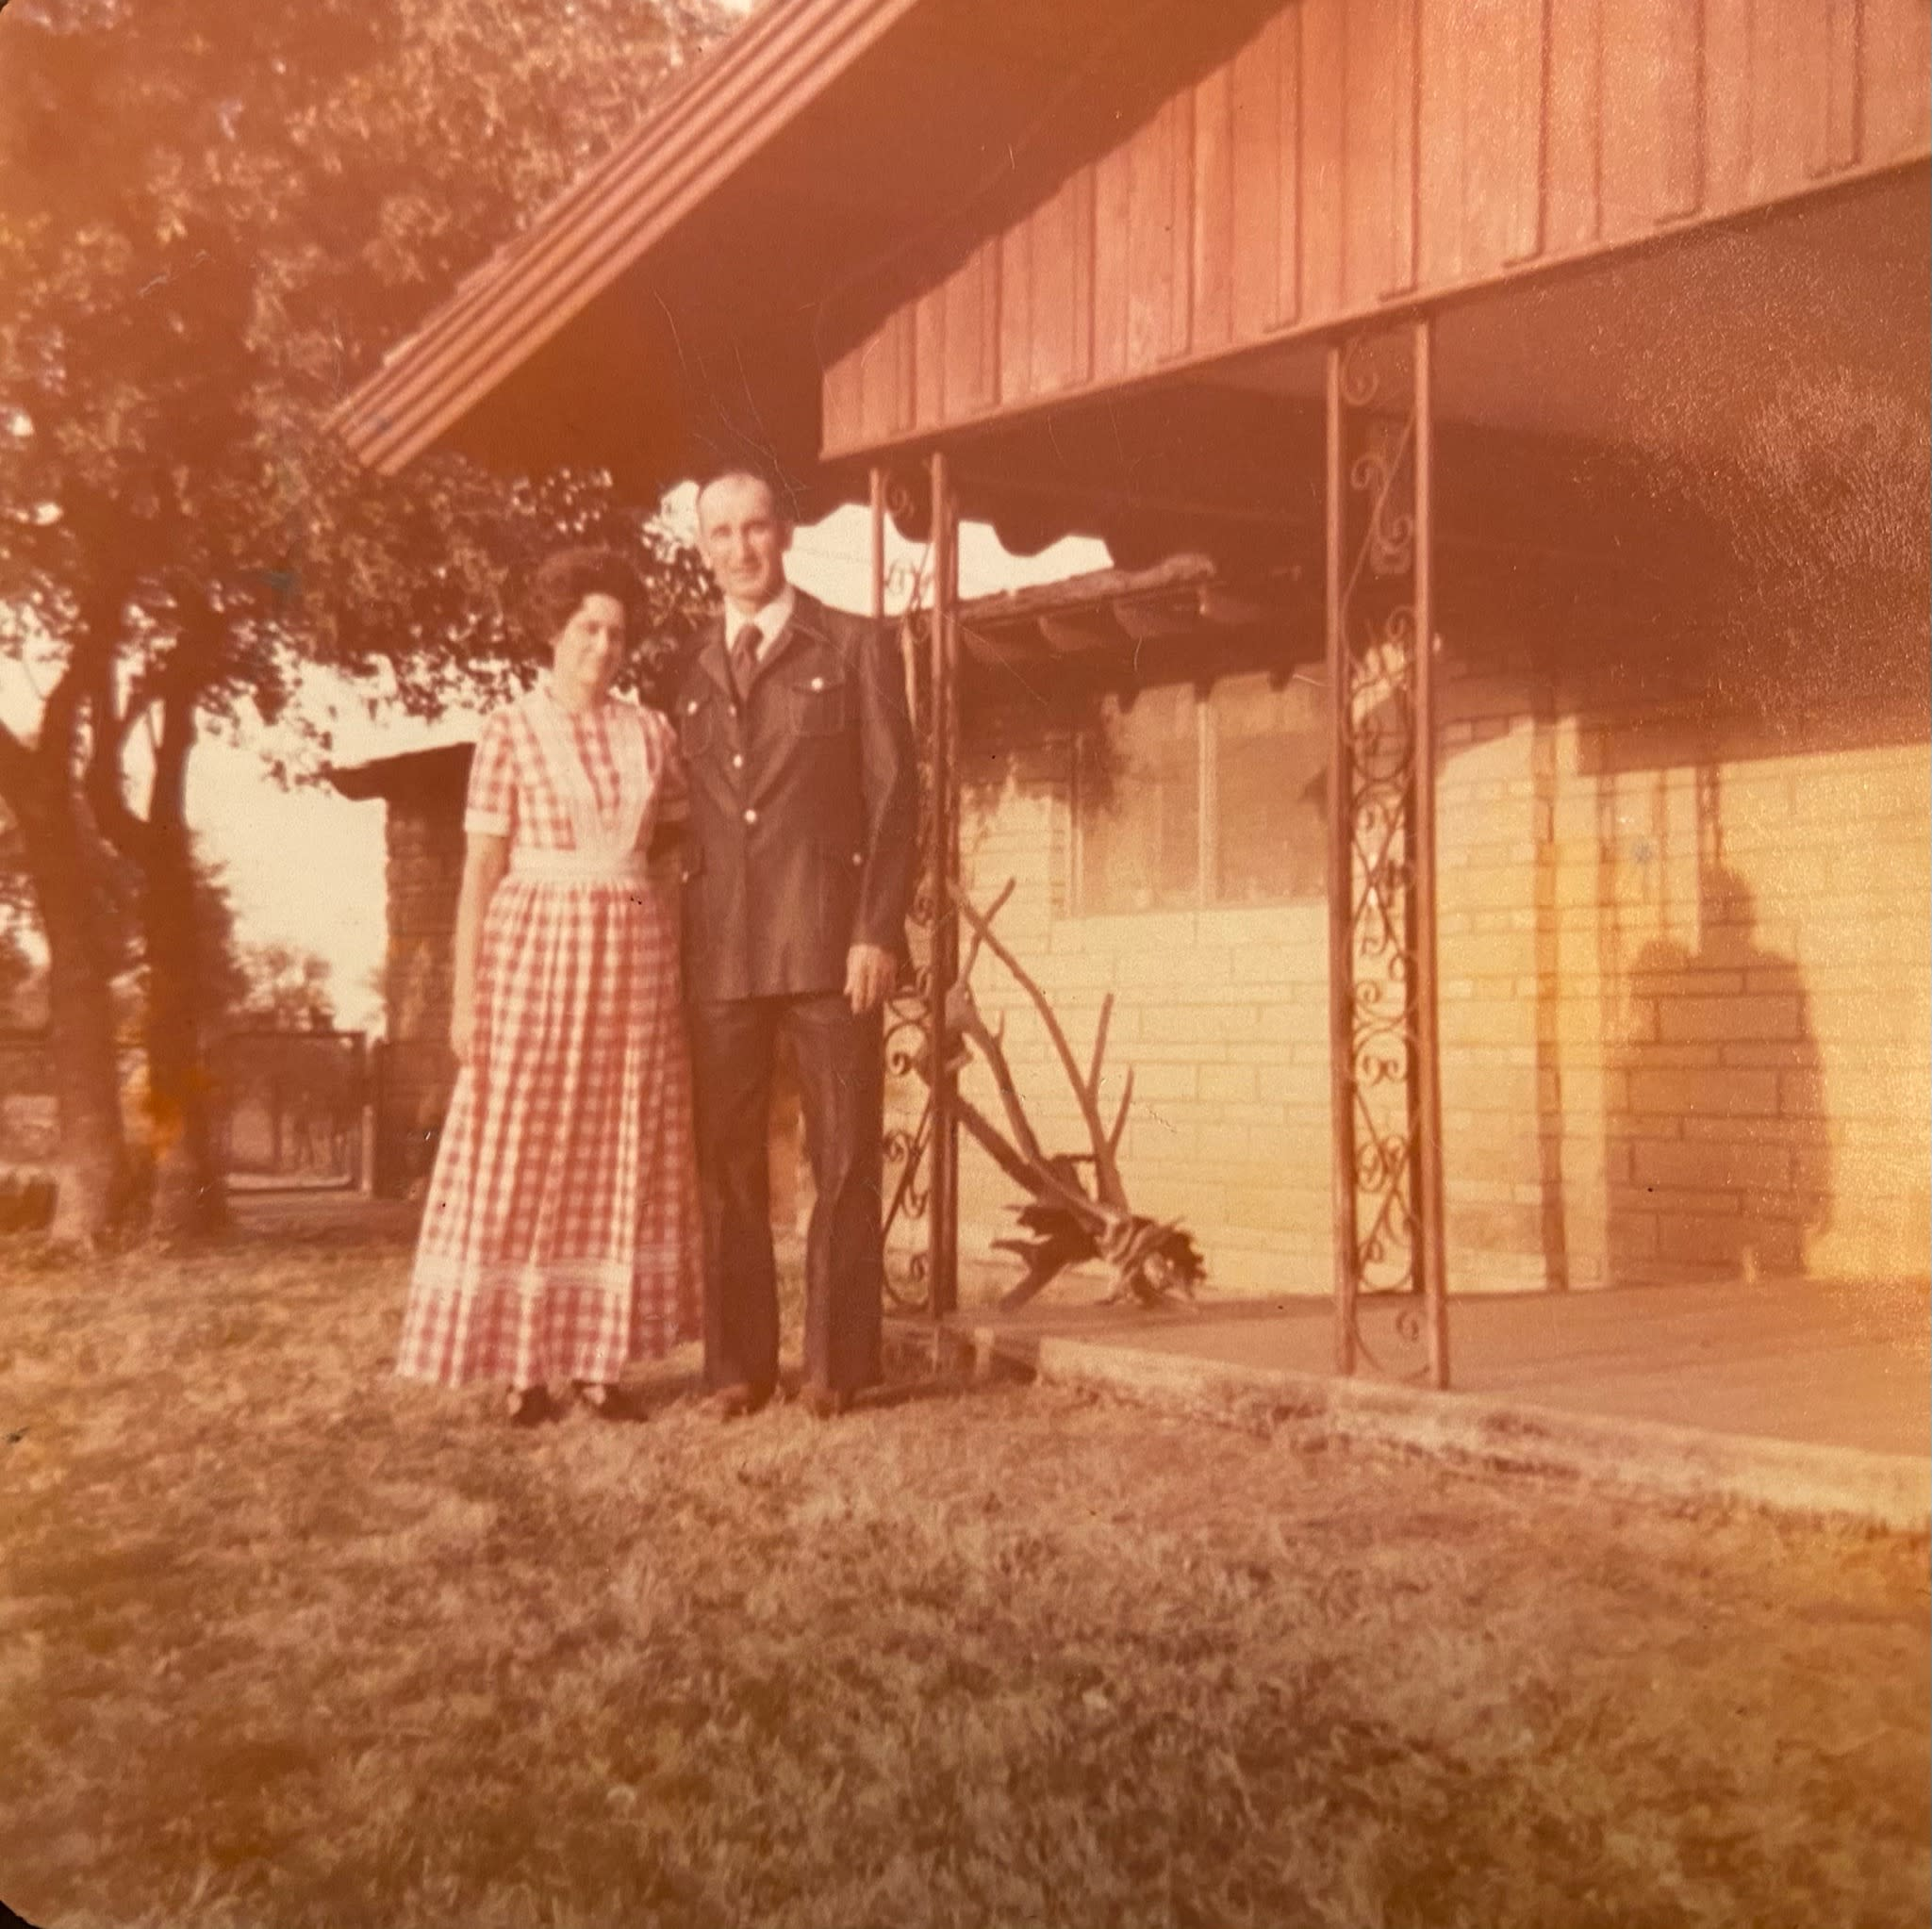 Old picture of man and woman